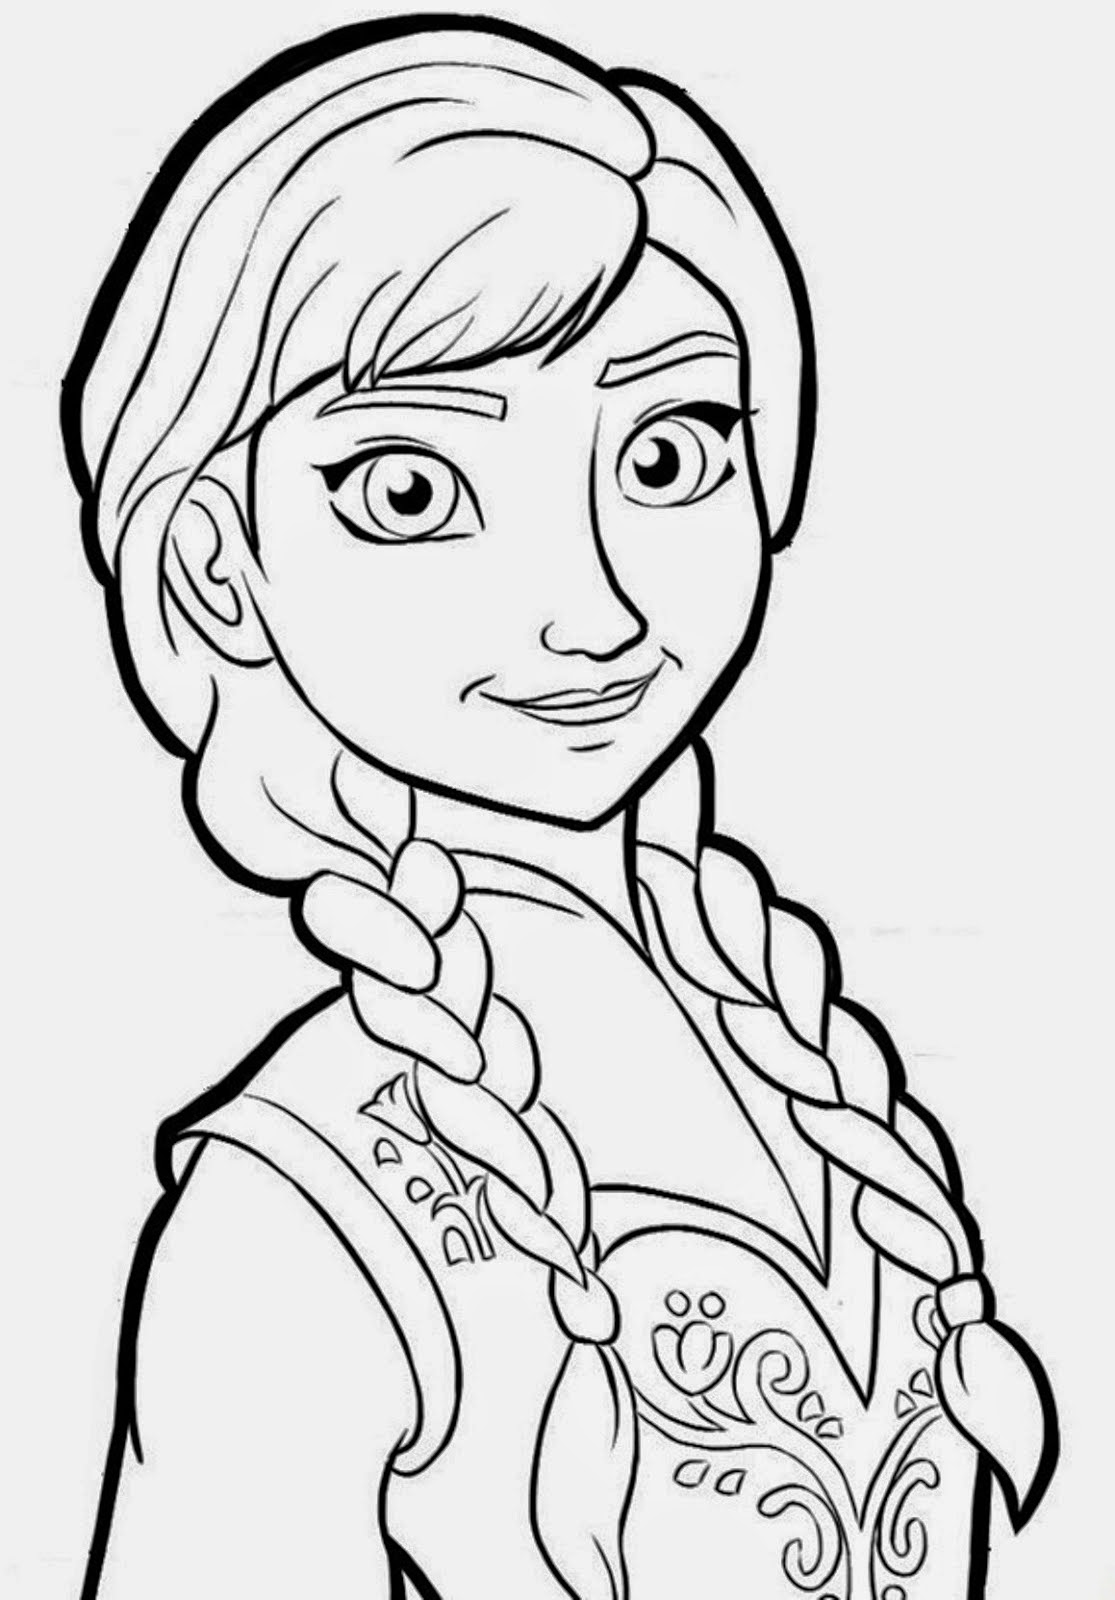 Frozen Coloring Pages Black And White : Desenhos de frozen uma aventura congelante para colorir